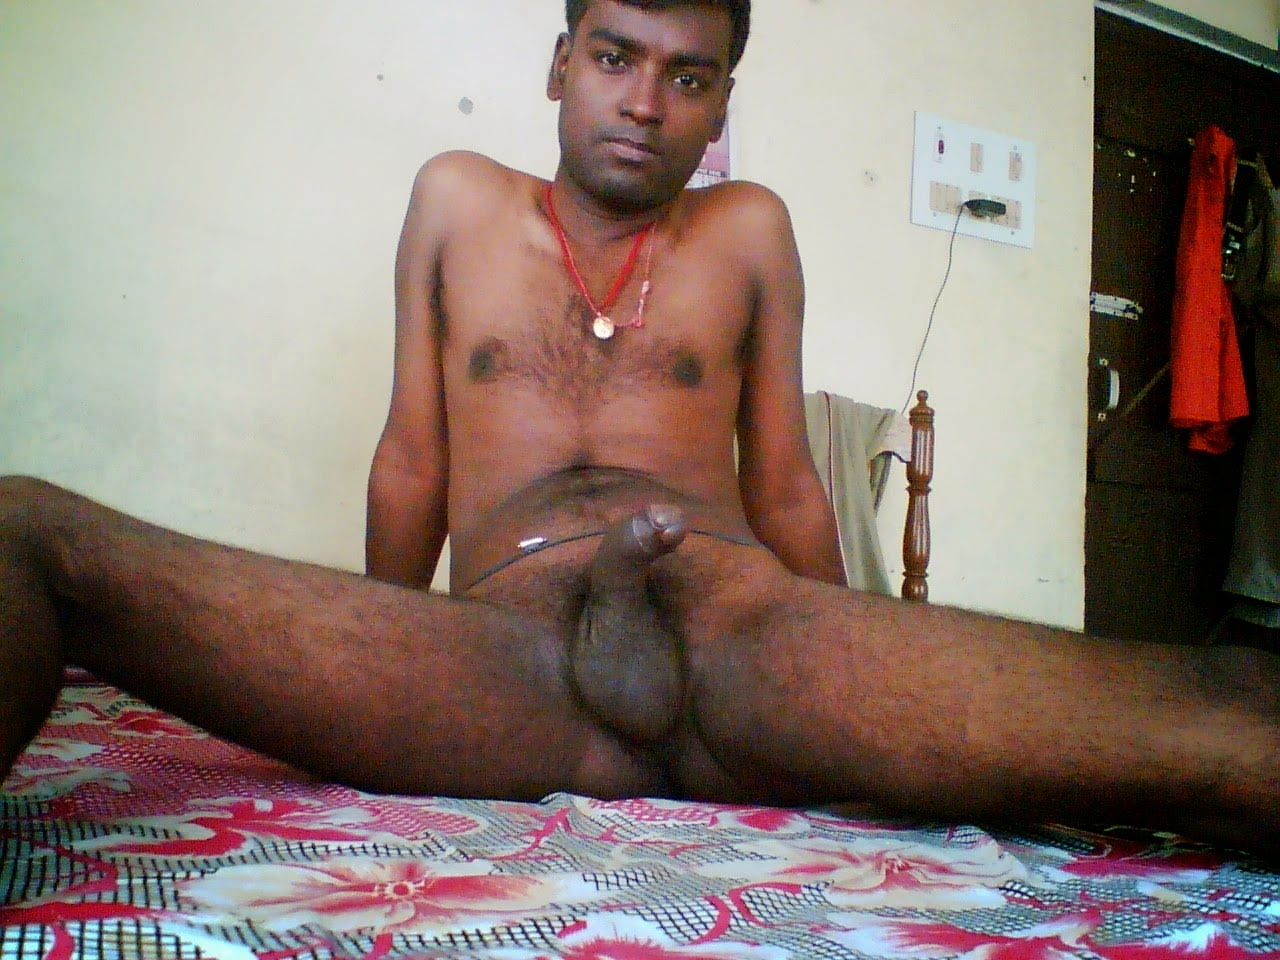 Who wants to fuck me !! - Indian Gay Site